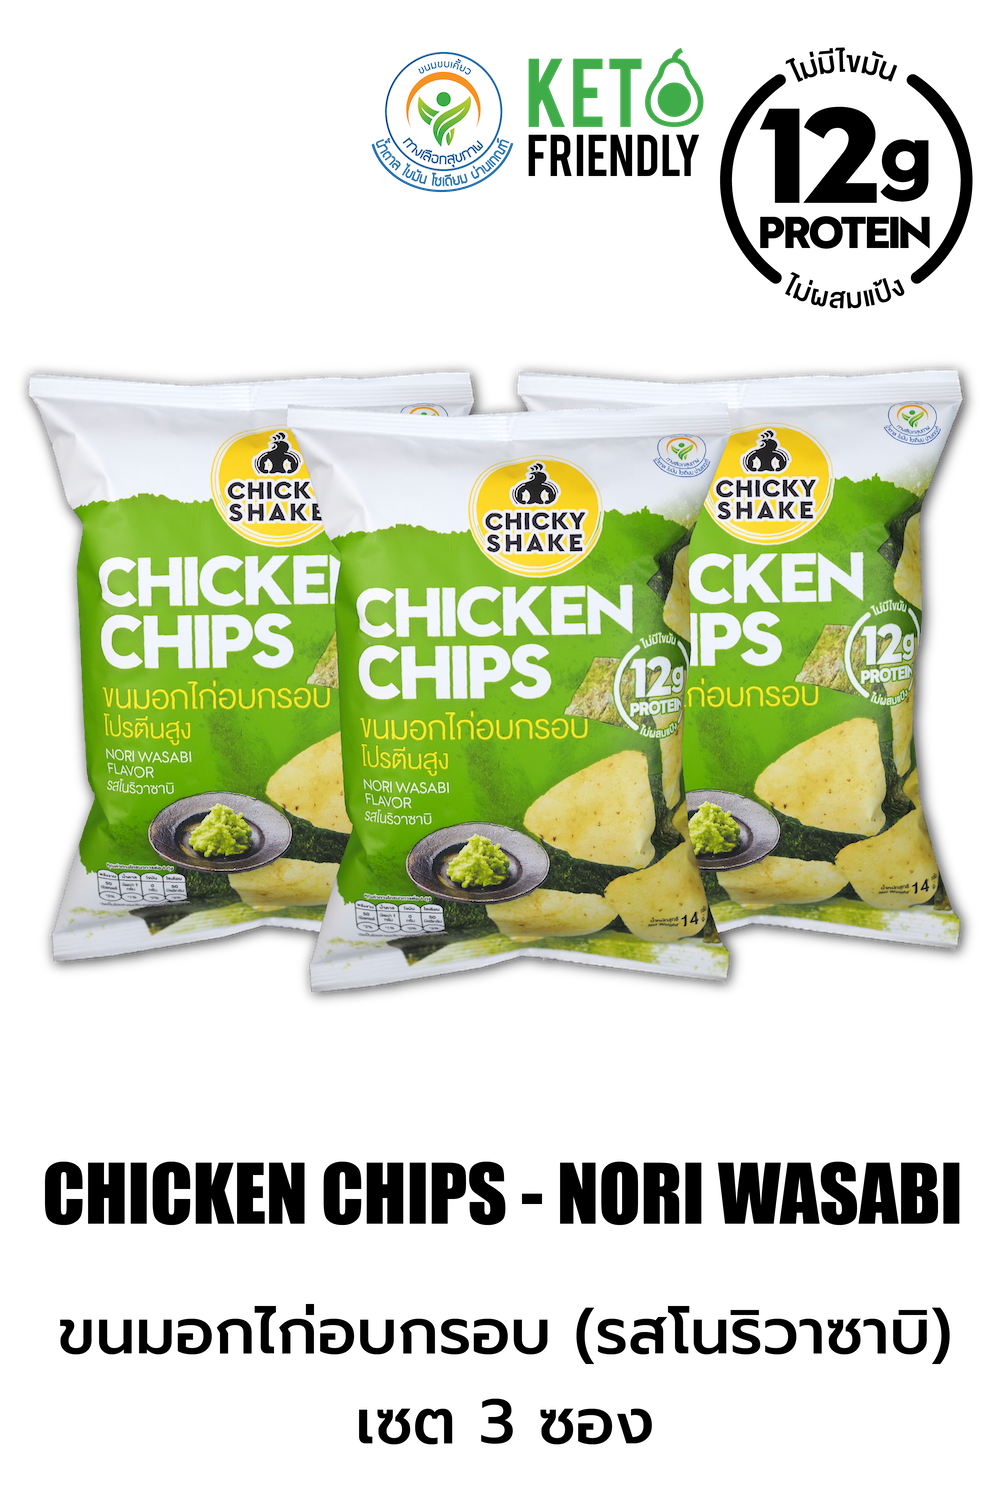 Chicky Shake Chicken Breast Chips High Protein - Nori Wasabi Flavour (Set 3)(copy)(copy)